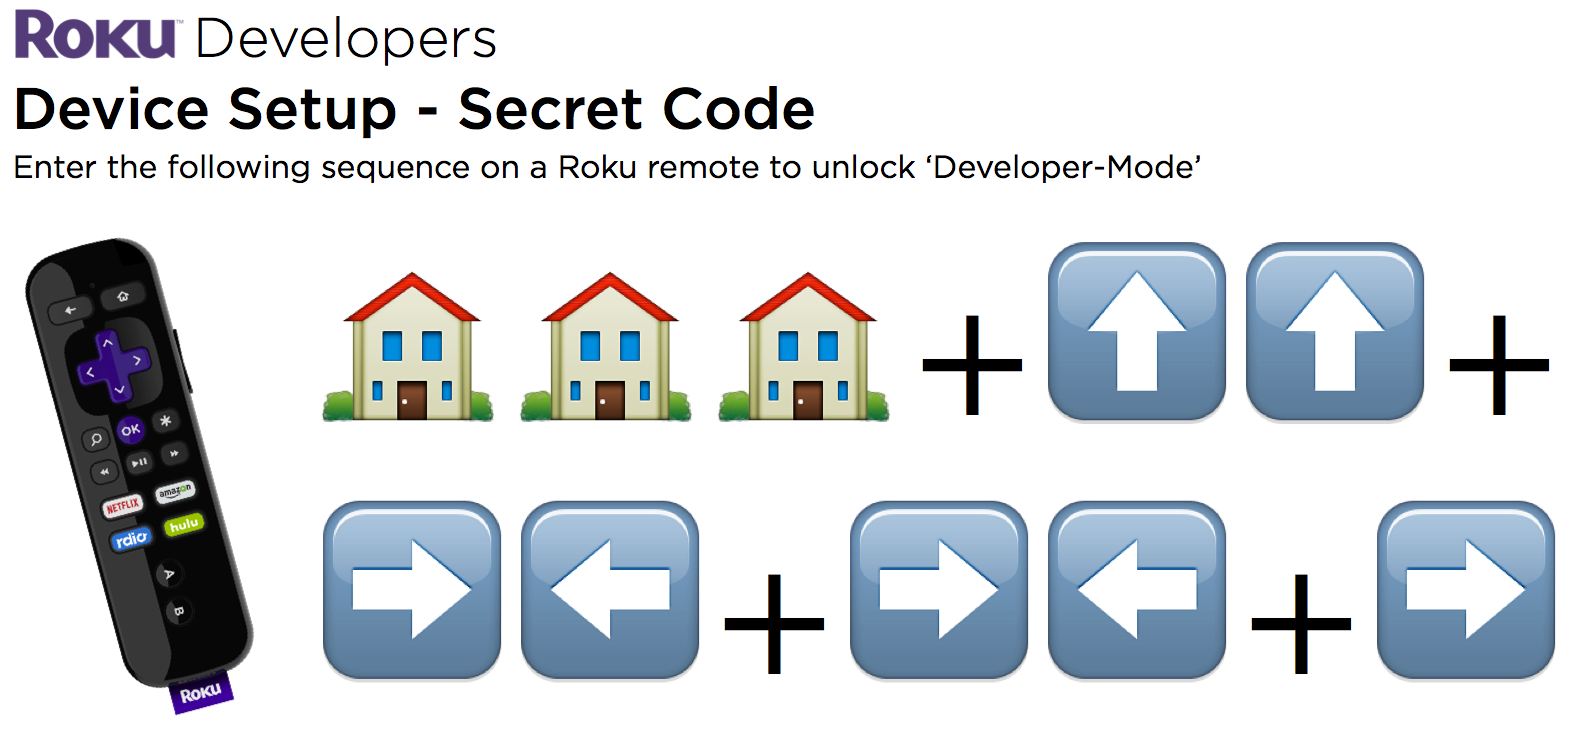 Device Setup Guide for Roku Developers